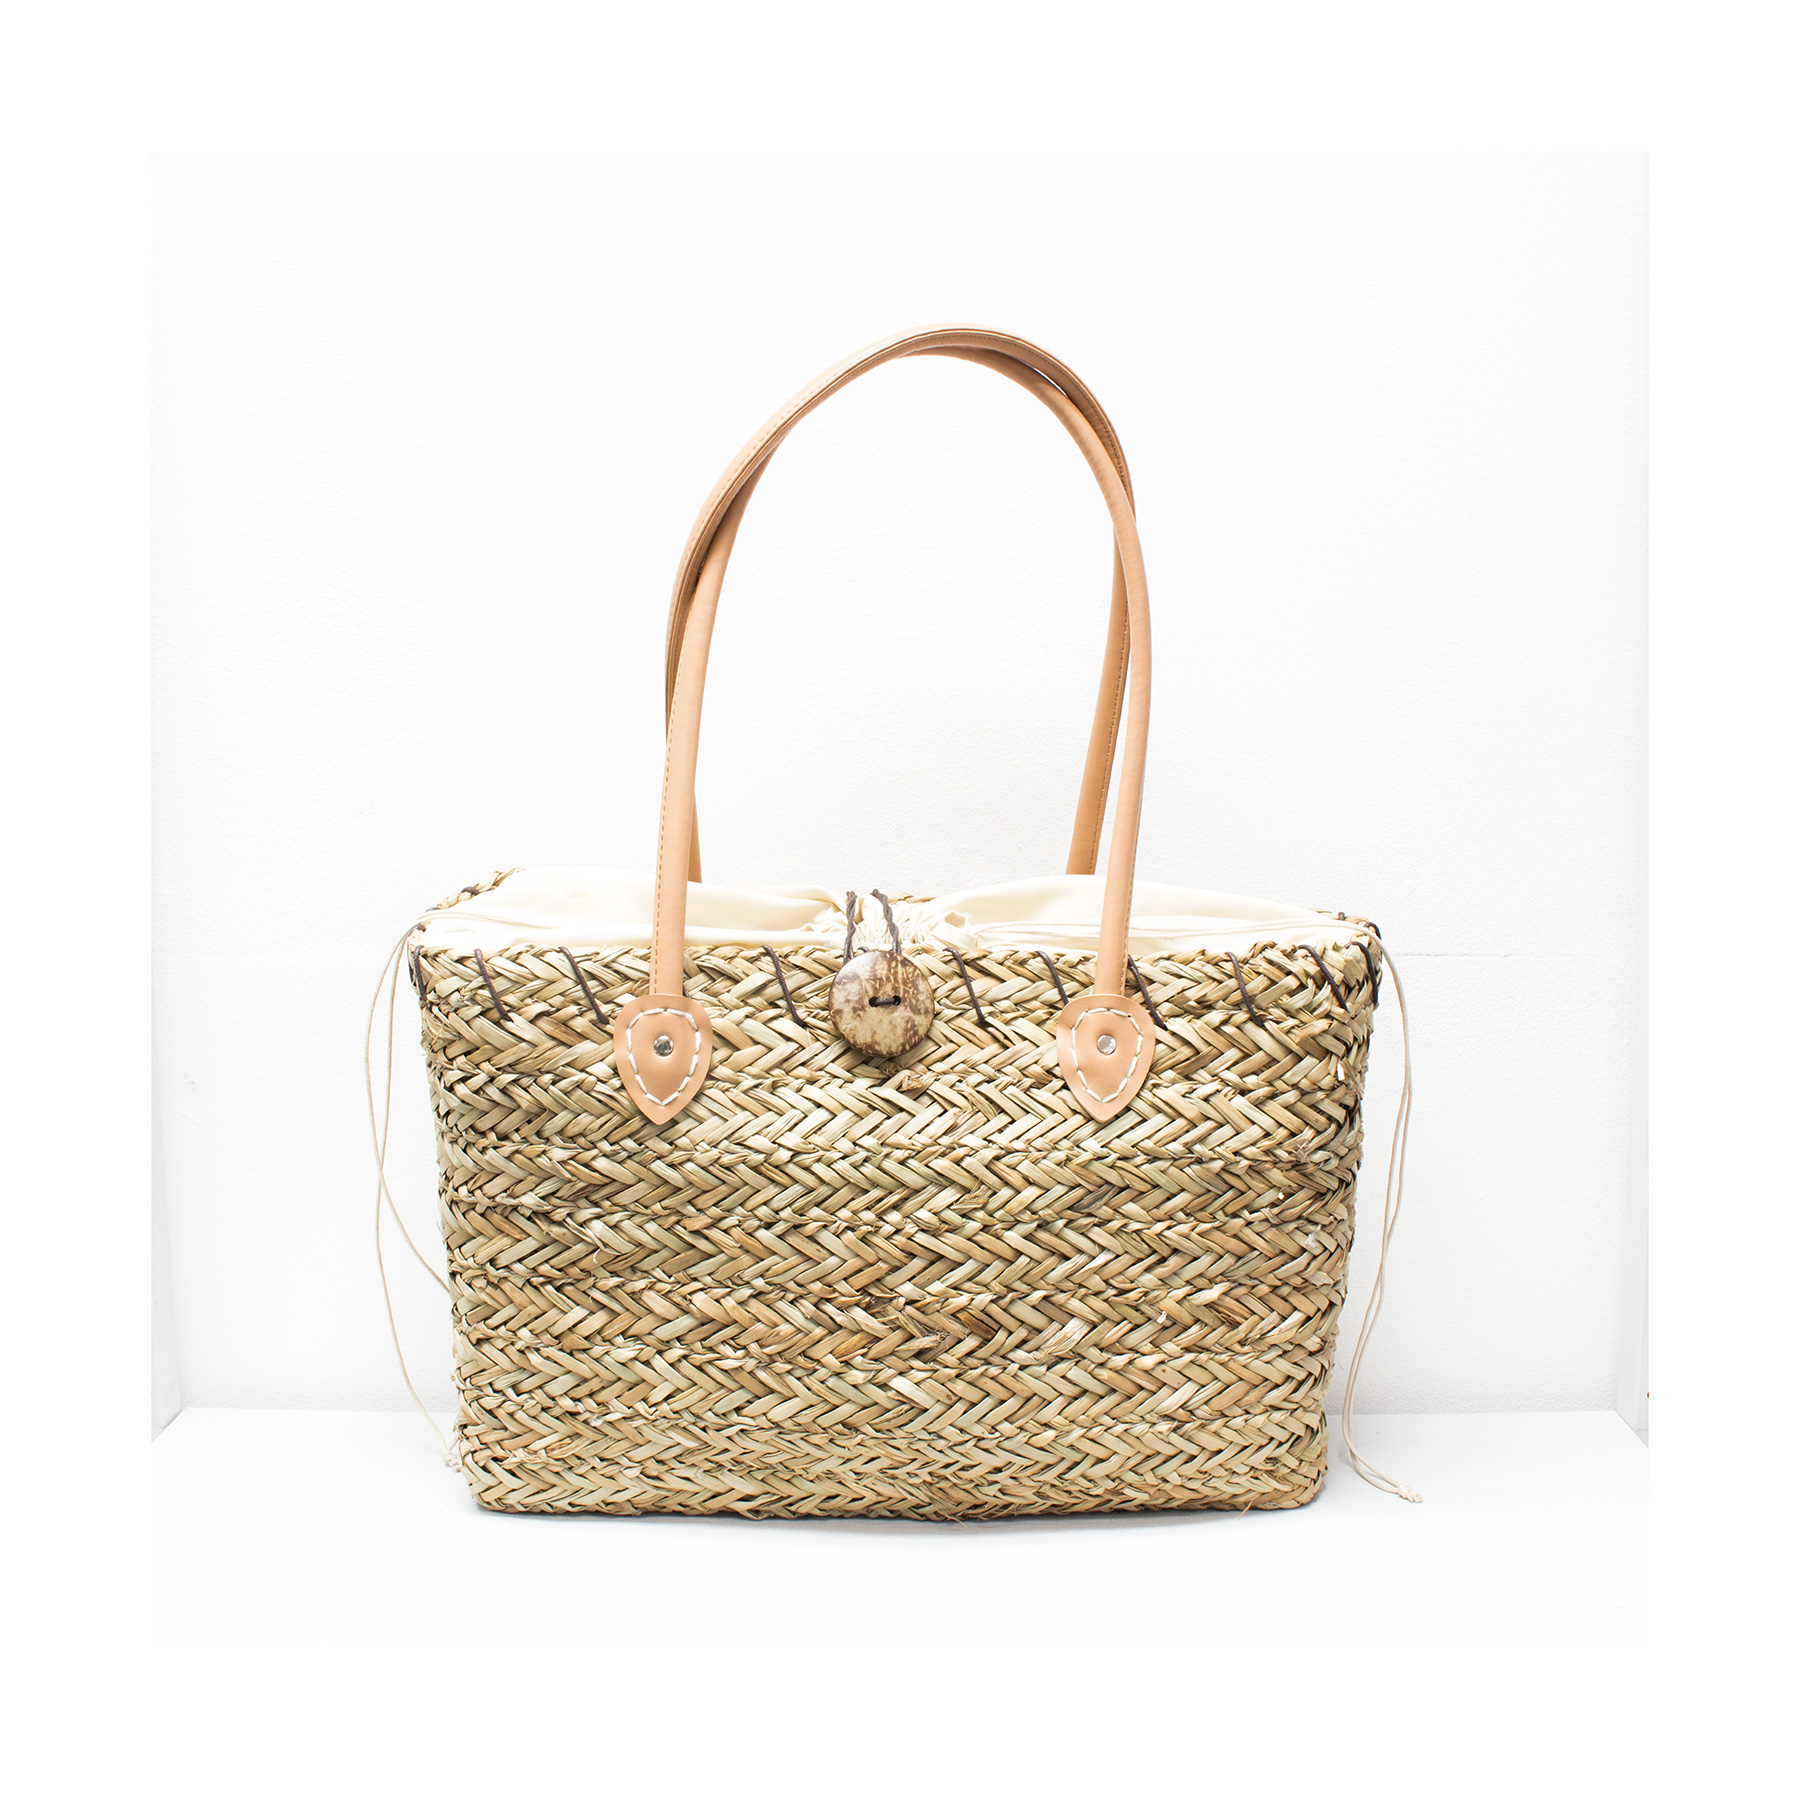 Shop the largest selection of Straw Beach Bags at the web's most popular swim shop. Free Shipping on $49+. Low Price Guarantee. + Brands. 24/7 Customer Service.